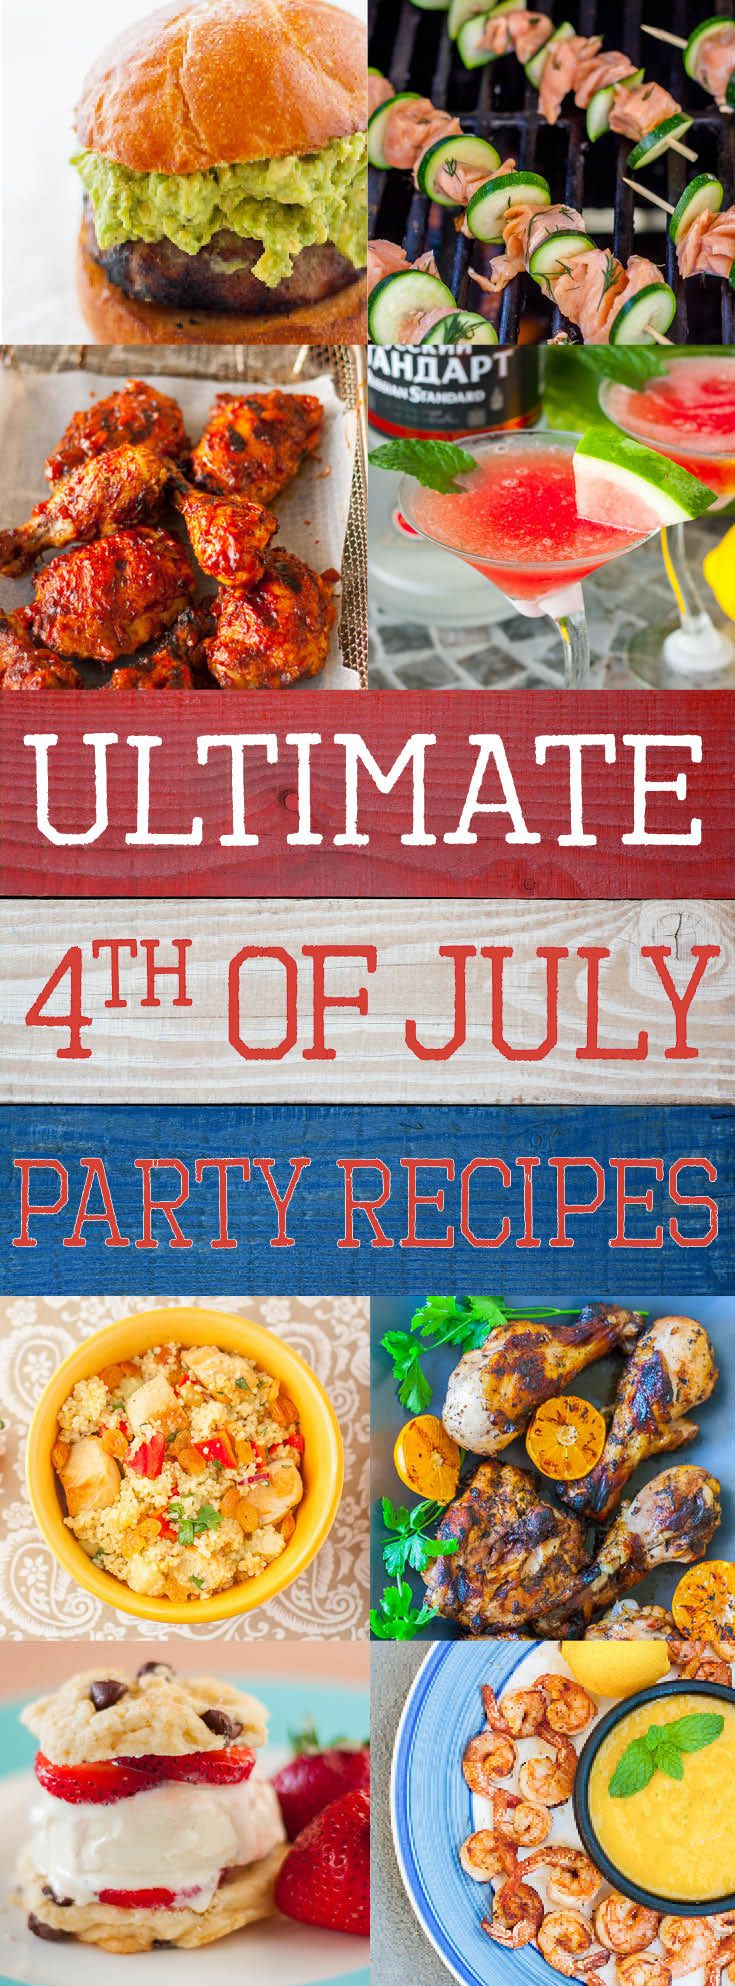 368 best 4th of july cocktails images on pinterest for 4th of july cocktail party recipes